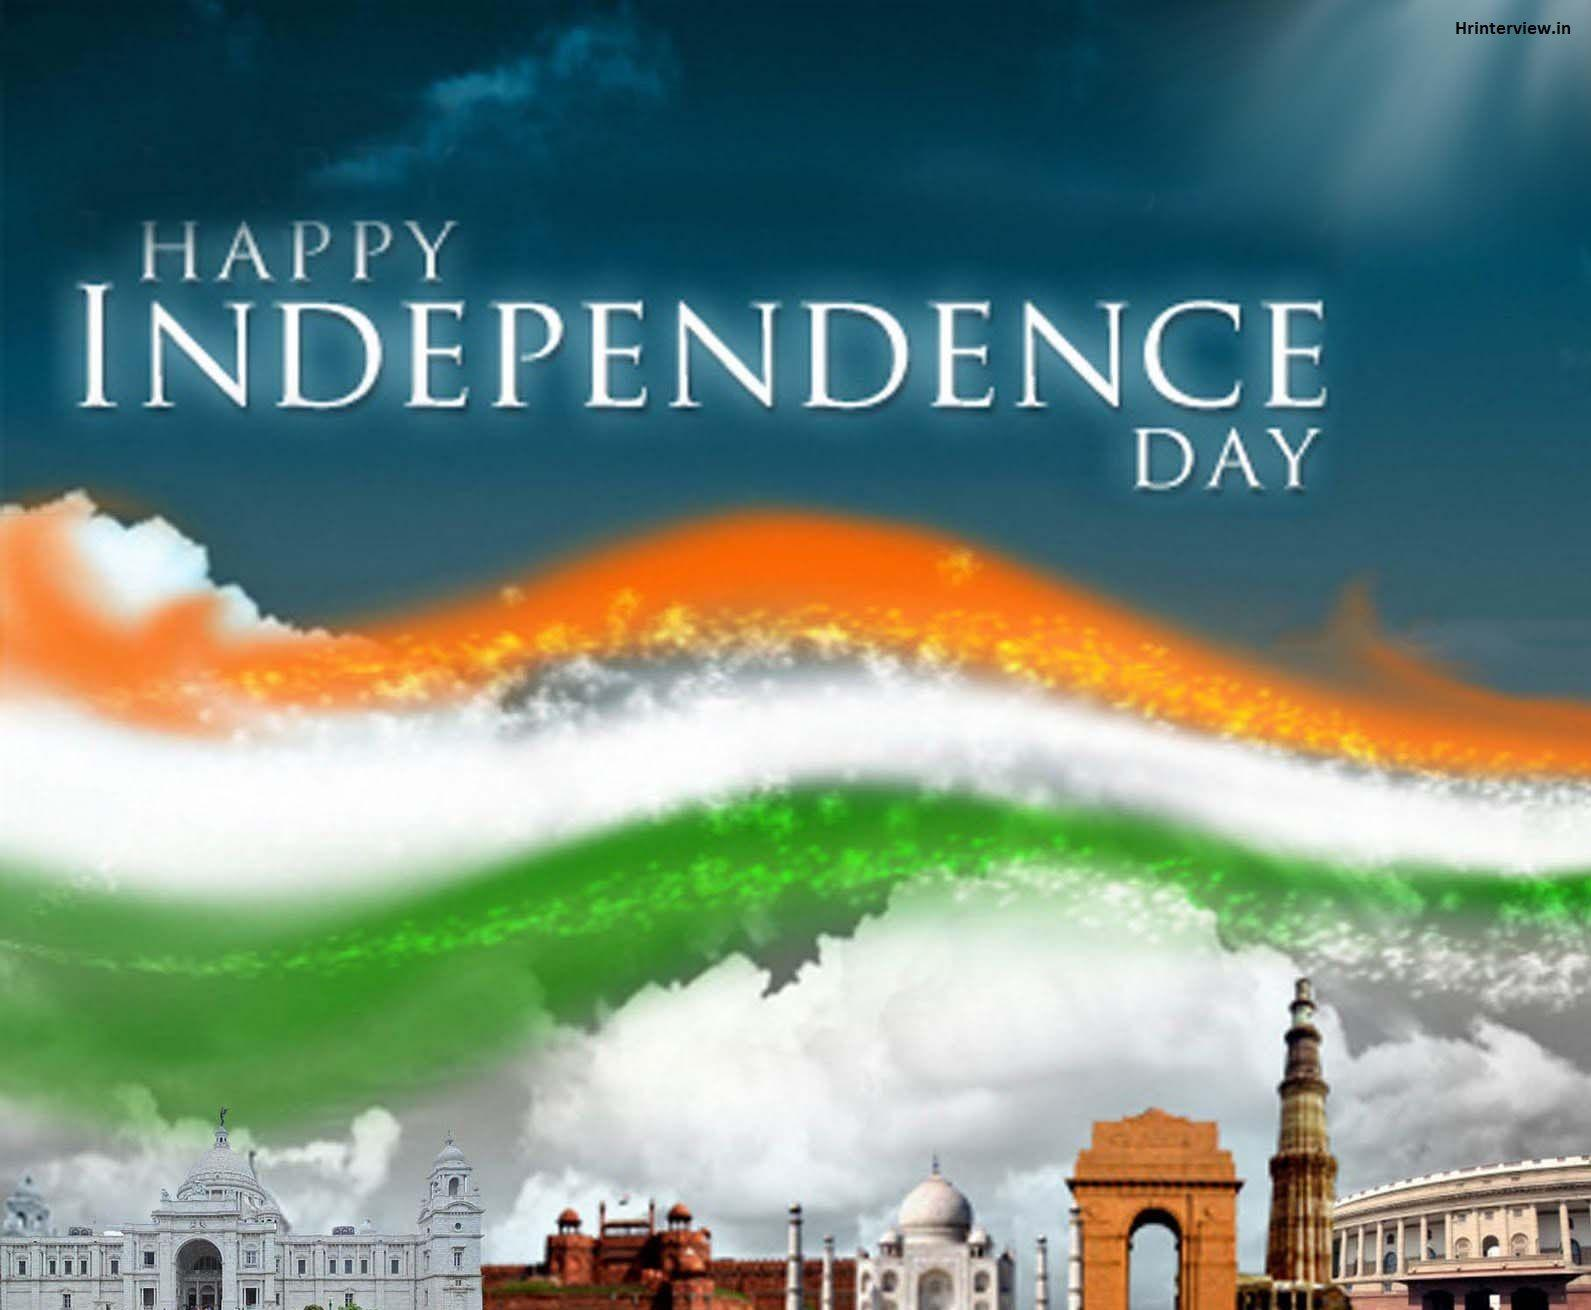 Independence Day Hd Stream